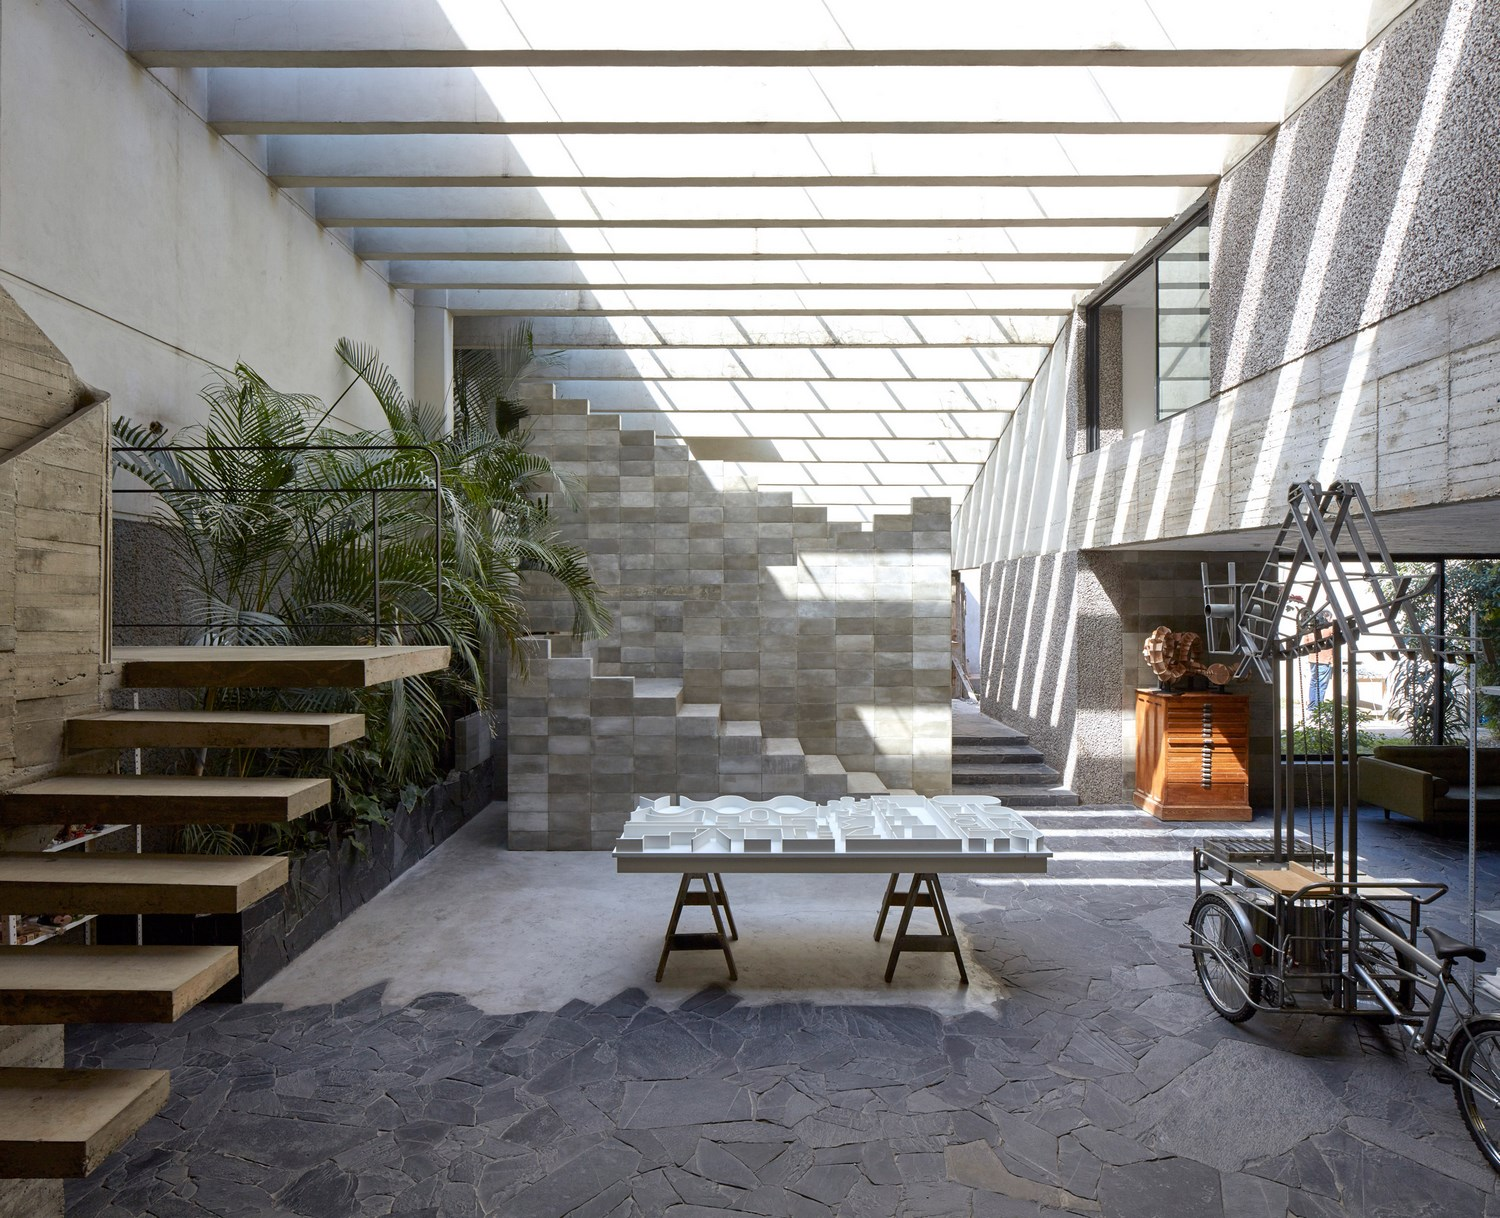 Brutalist Home Amp Studio Of Mexican Sculptor Pedro Reyes